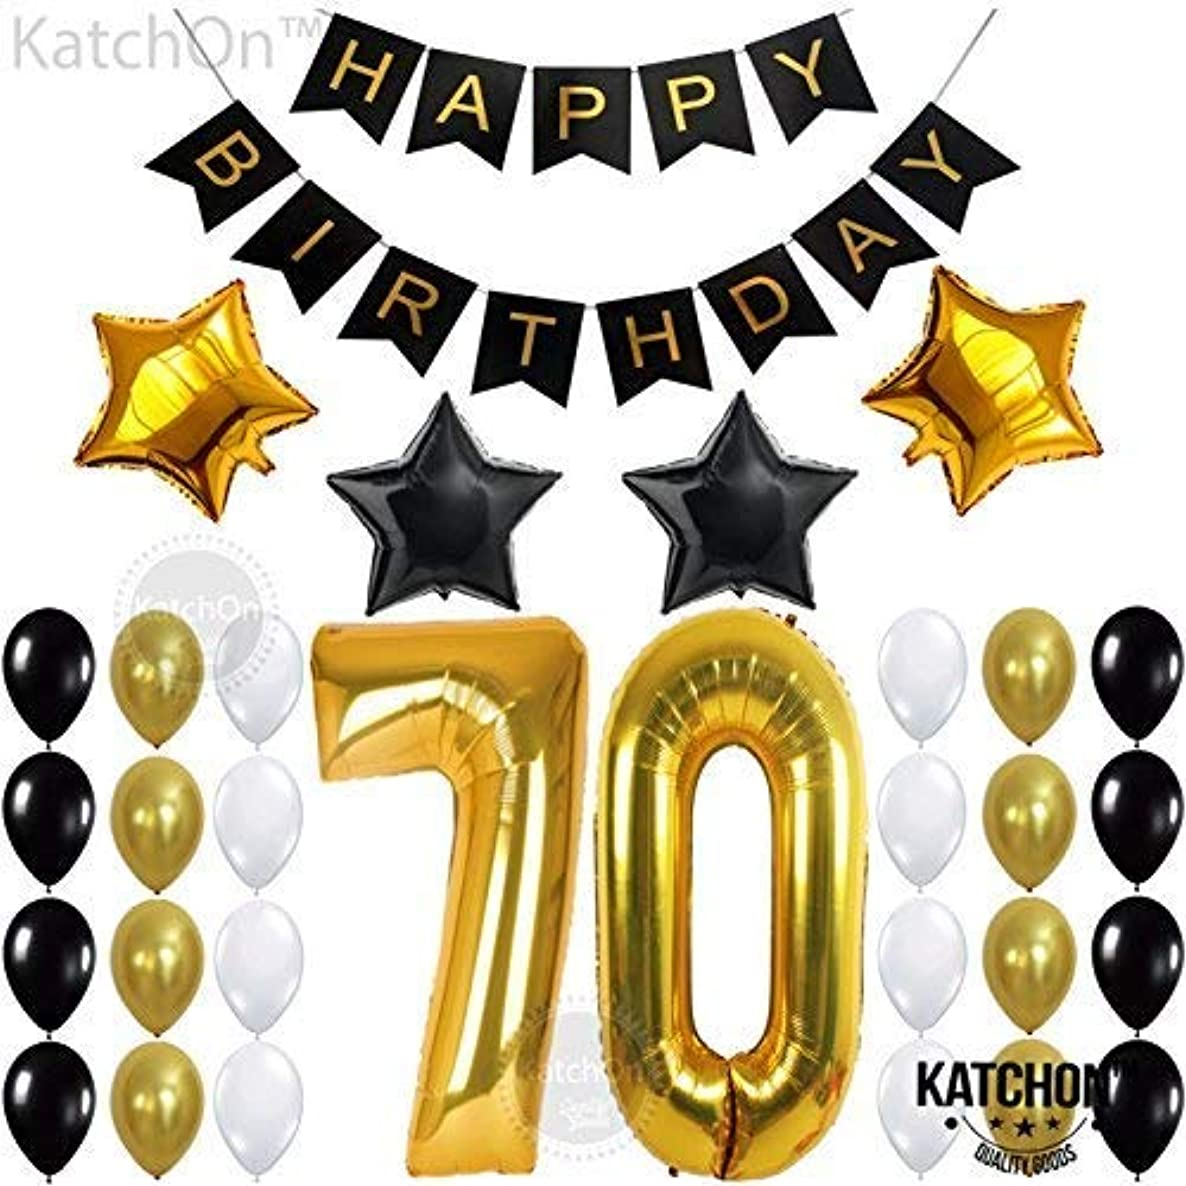 70th BIRTHDAY PARTY DECORATIONS KIT - 70th Birthday Party Supplies | 70 Balloons Number | Black and Gold Banner and Balloons | Great 70 Years Old Party Supplies | 70's Theme Party for Adult